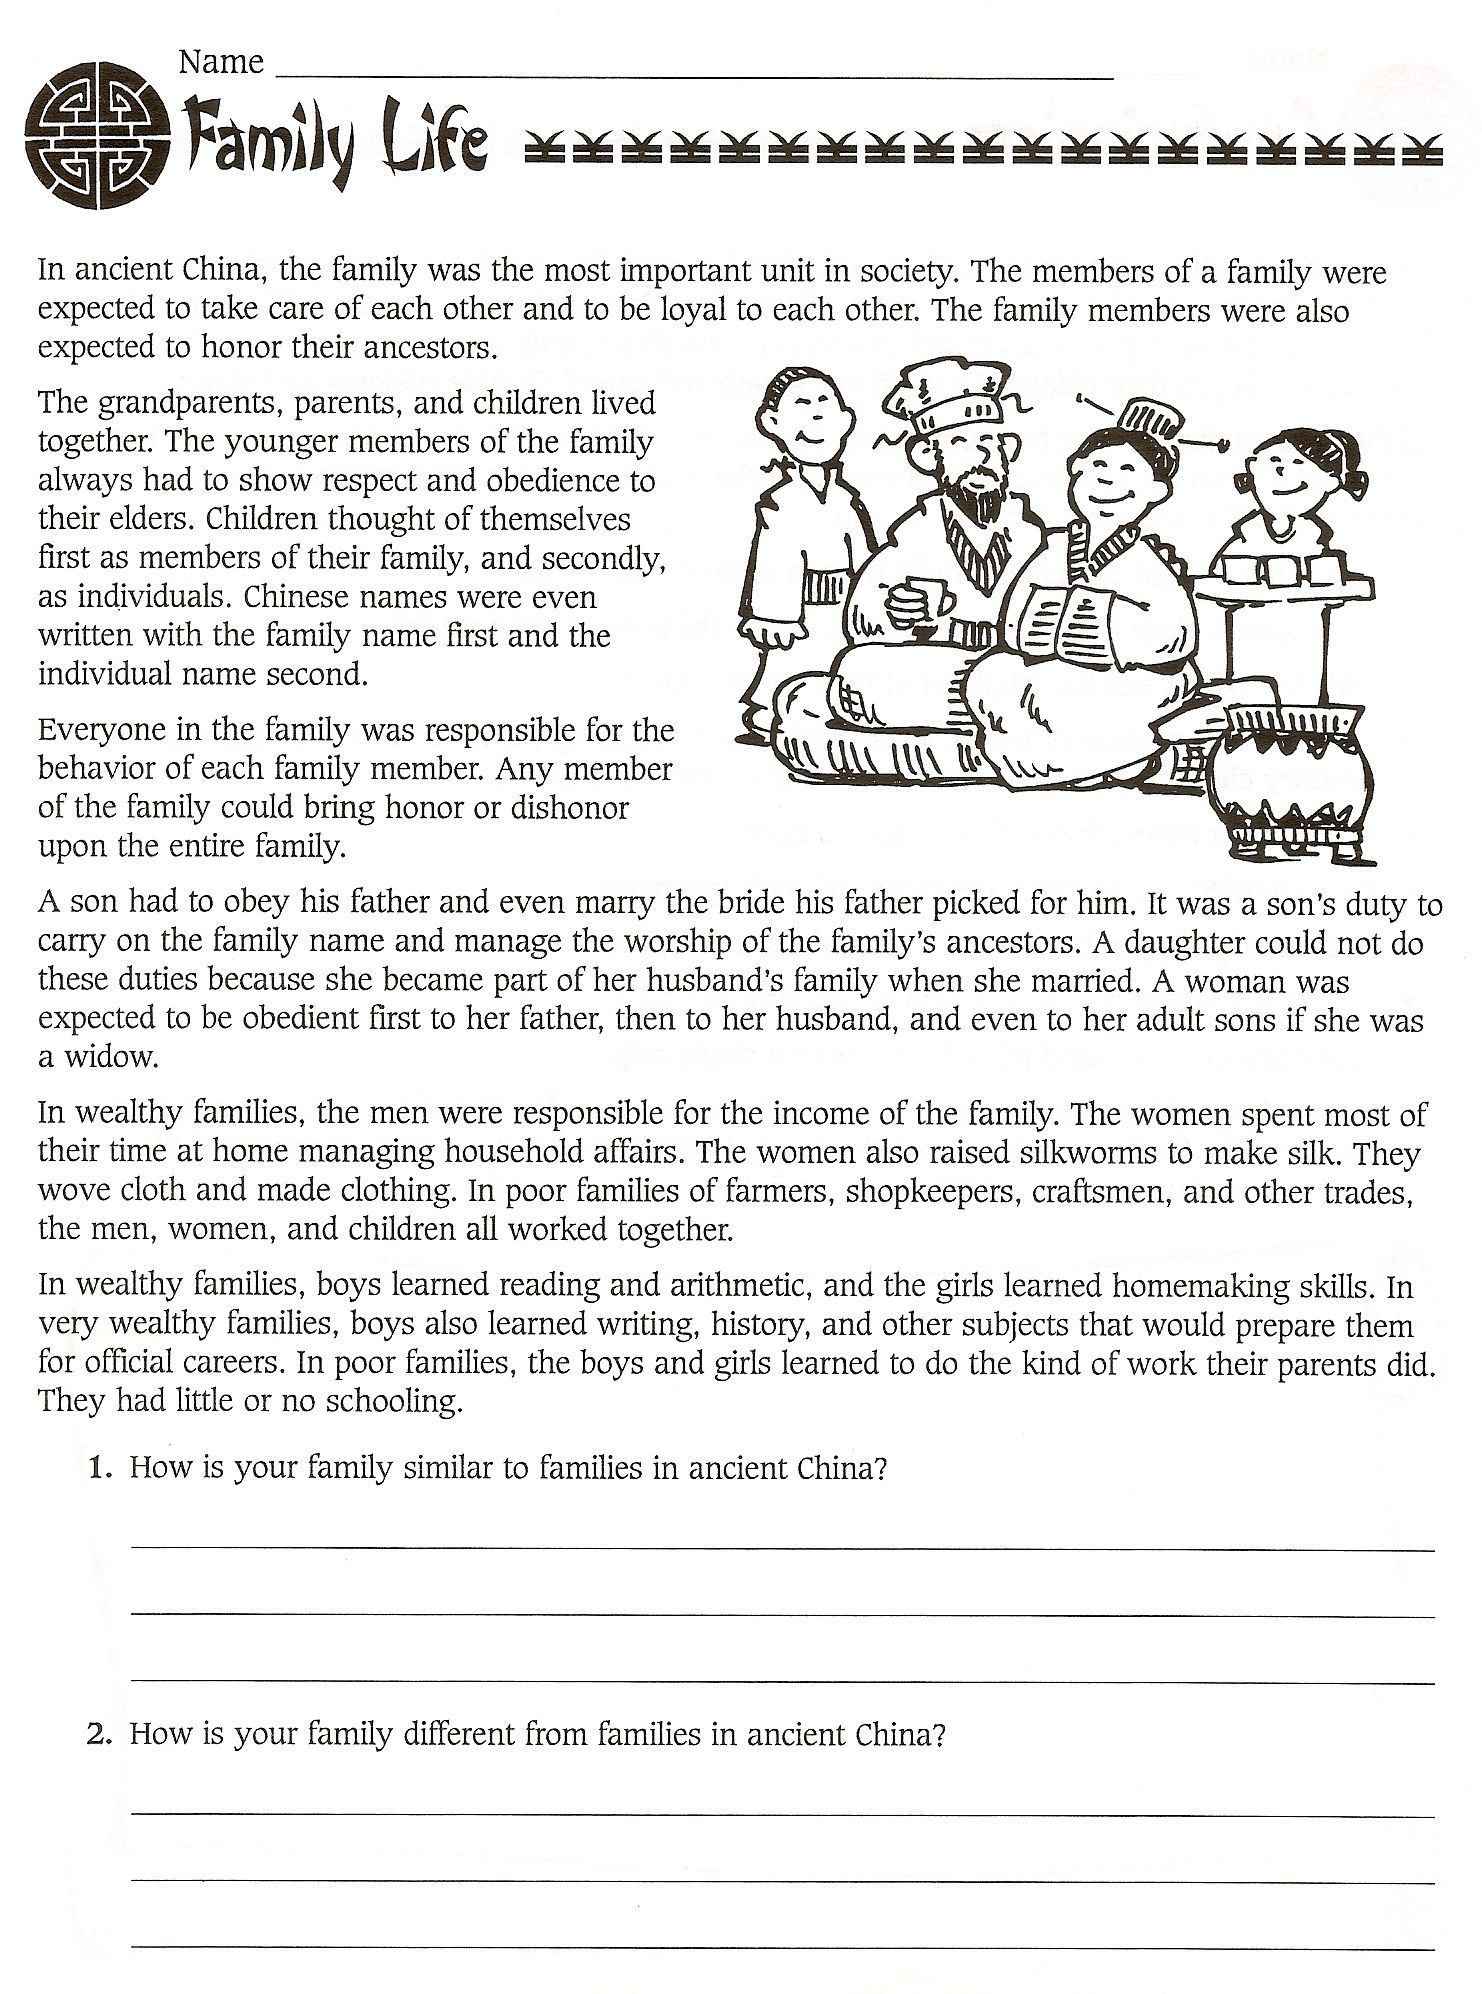 6Th Grade Social Studies Ancient China Worksheets - Free | Great Wall Of China Printable Worksheet